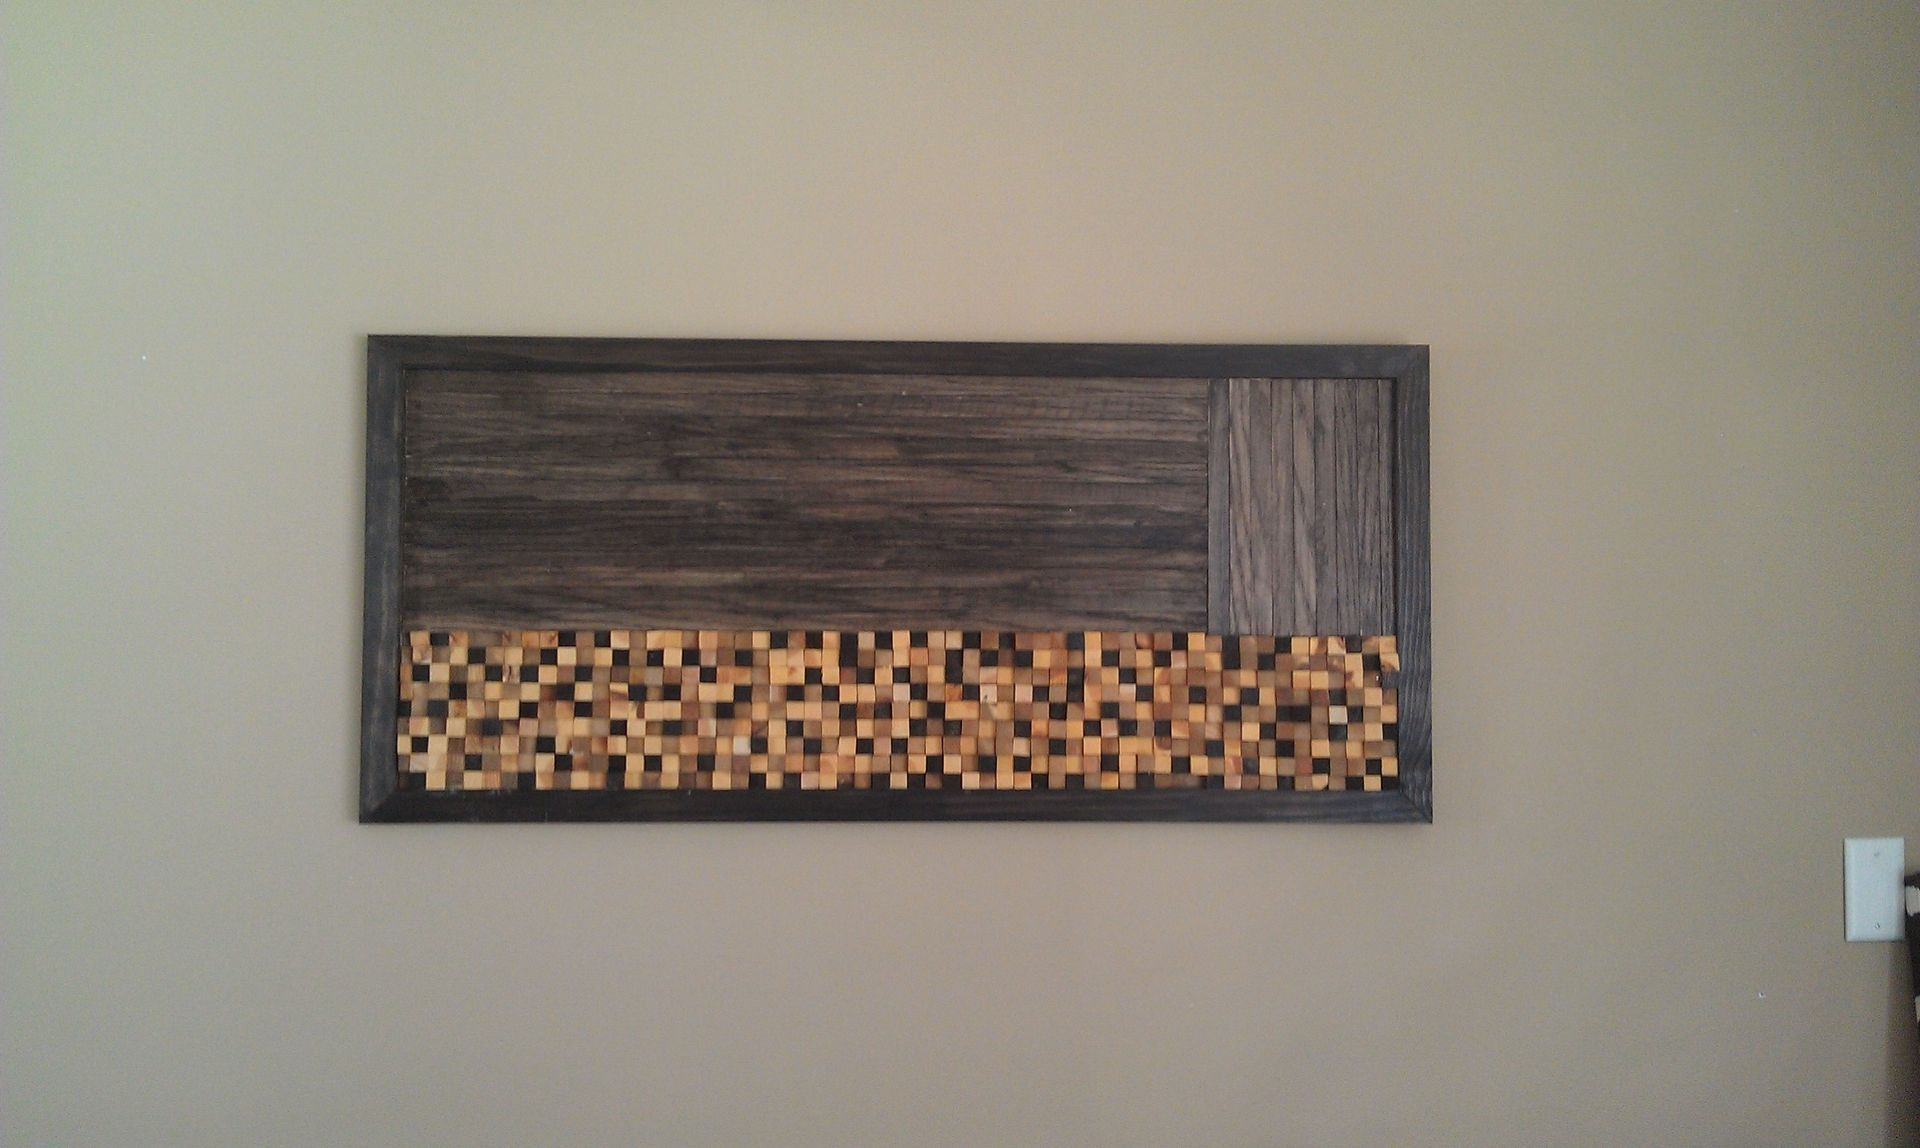 Concrete Wall Art : Handmade wood mosaic wall art by built concrete